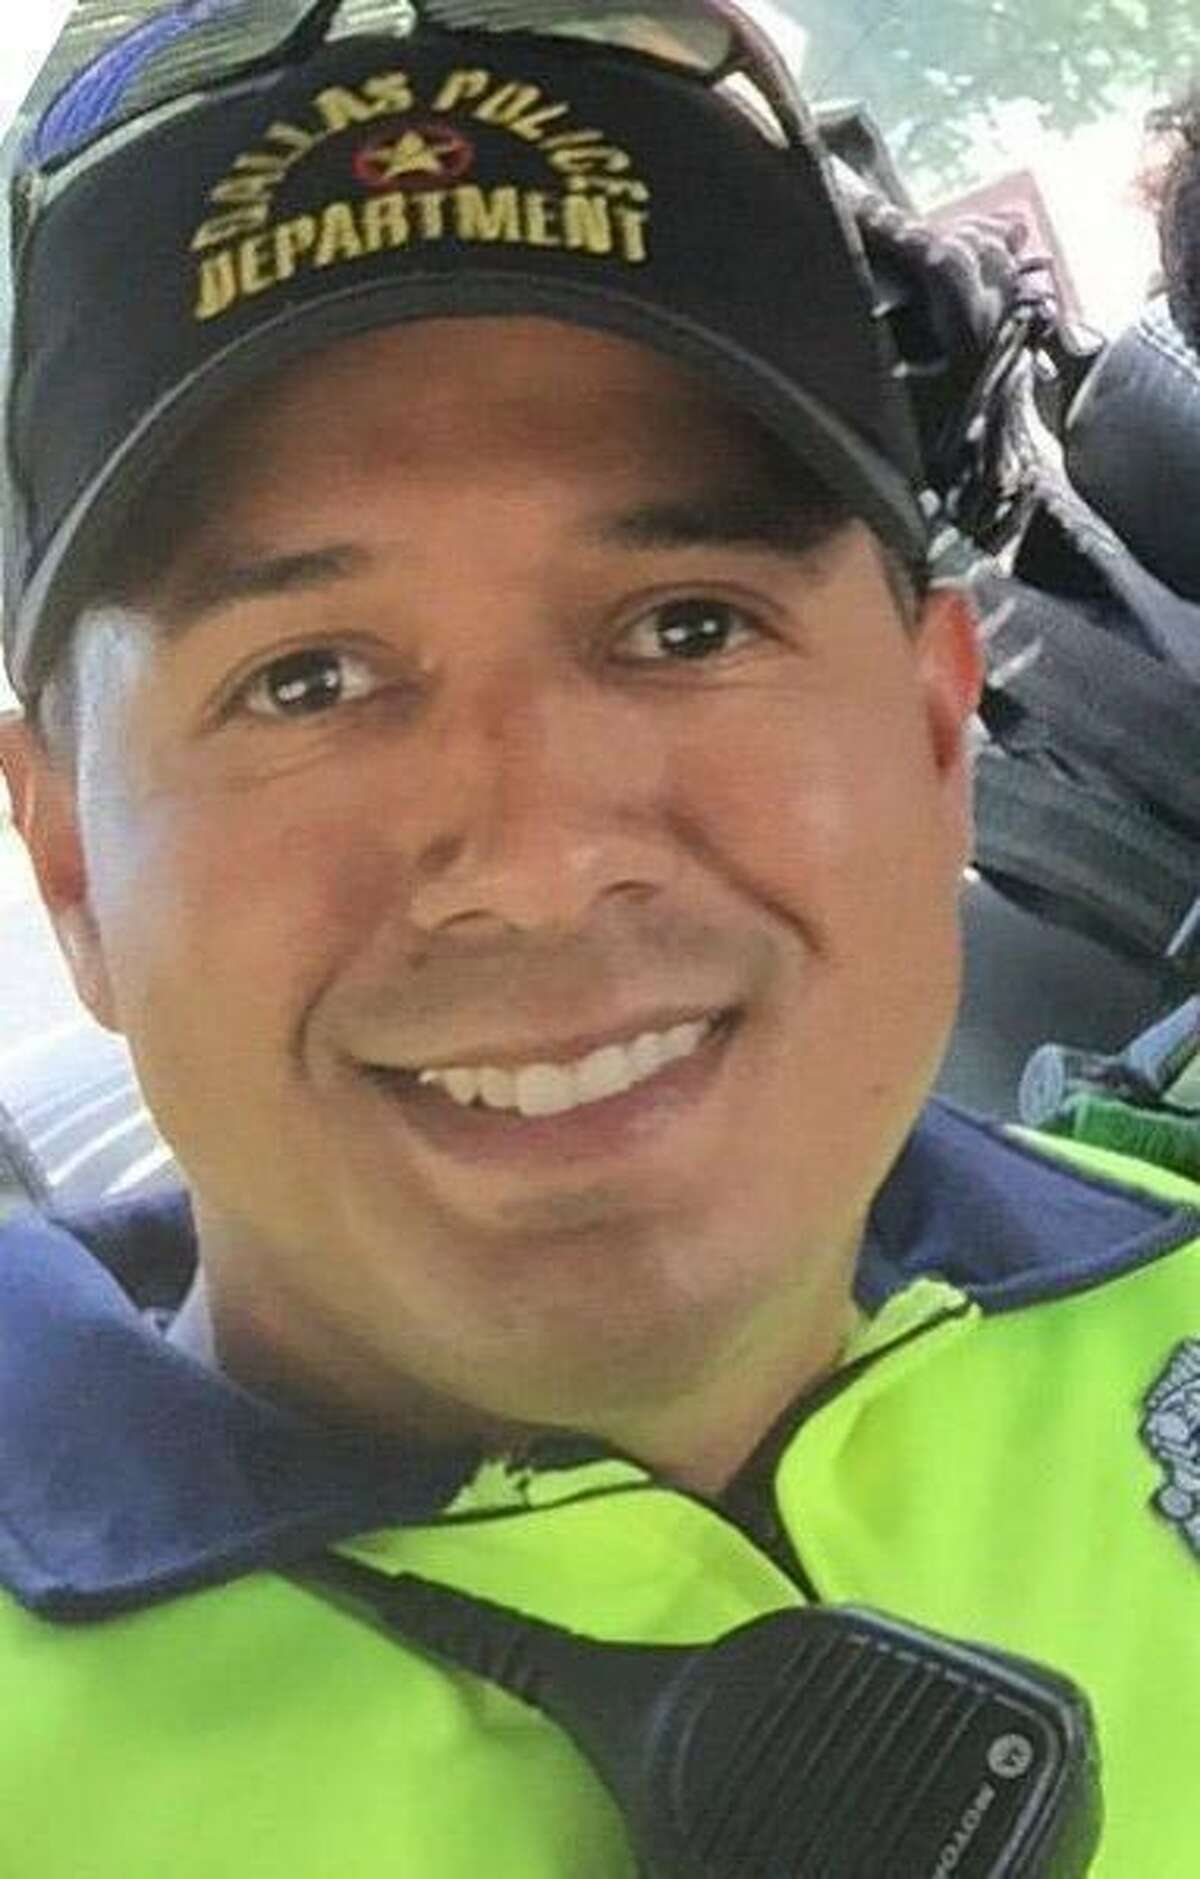 Patrick Zamarripa was one of five officers killed in a shooting incident in Dallas, Texas.